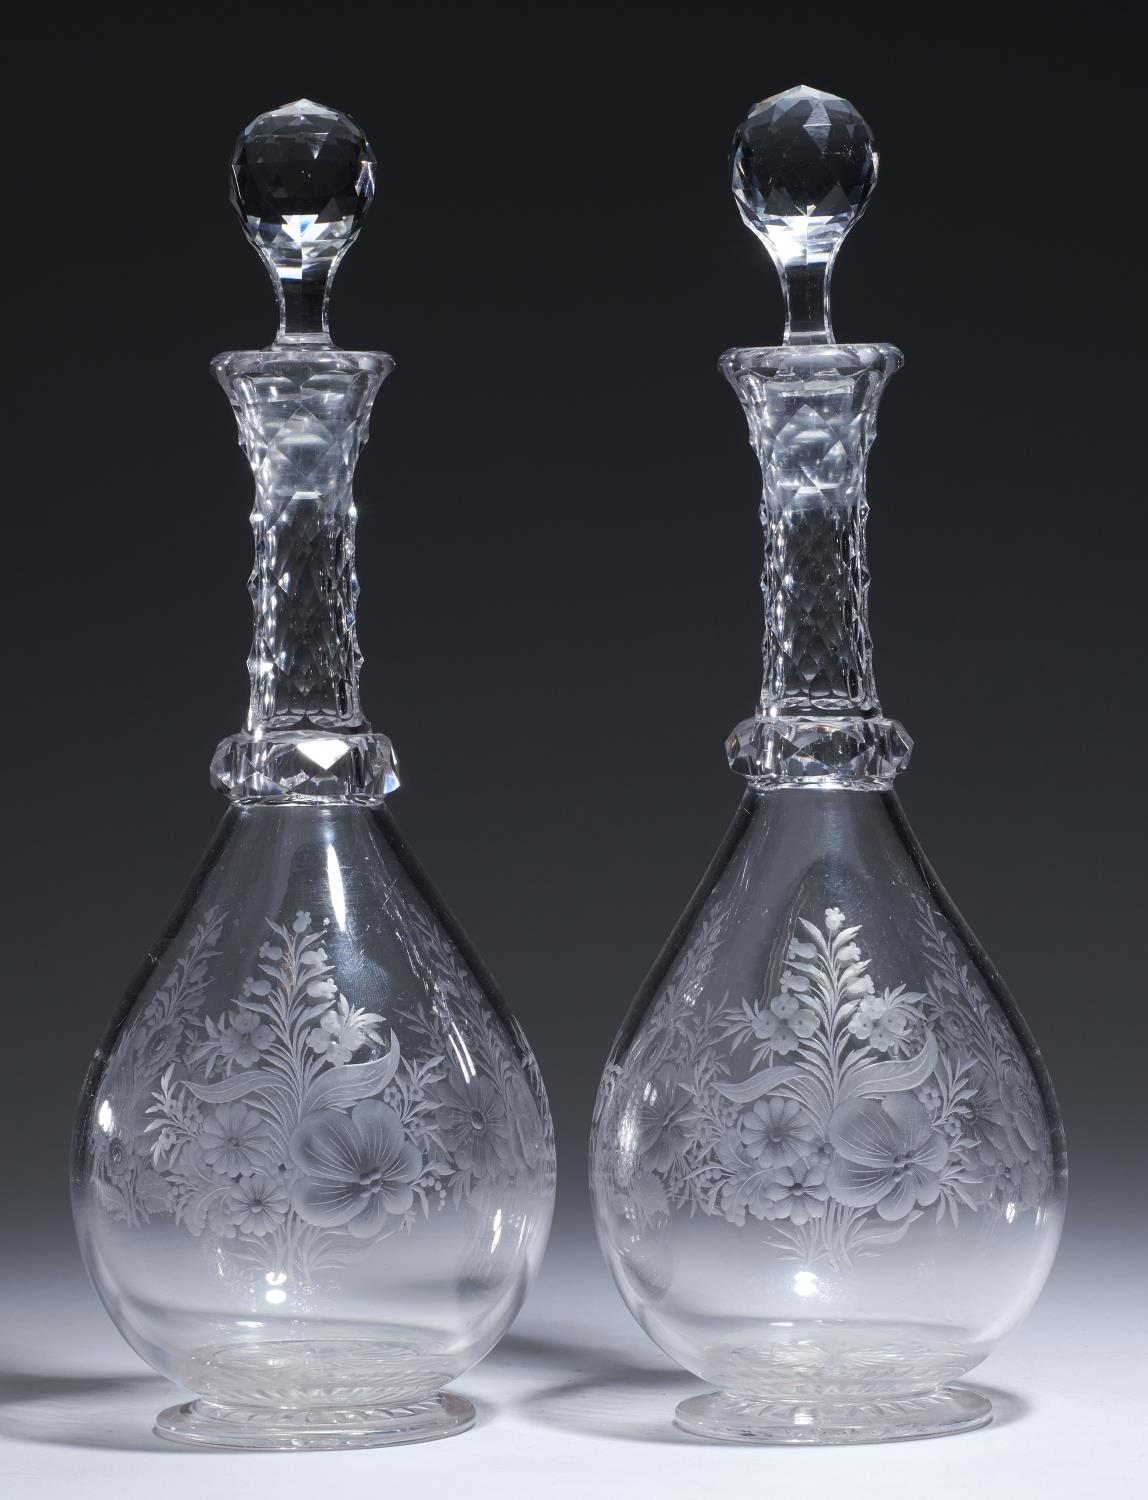 A PAIR OF ENGRAVED AND CUT GLASS DECANTERS AND STOPPERS, EARLY 20TH C with faceted neck and